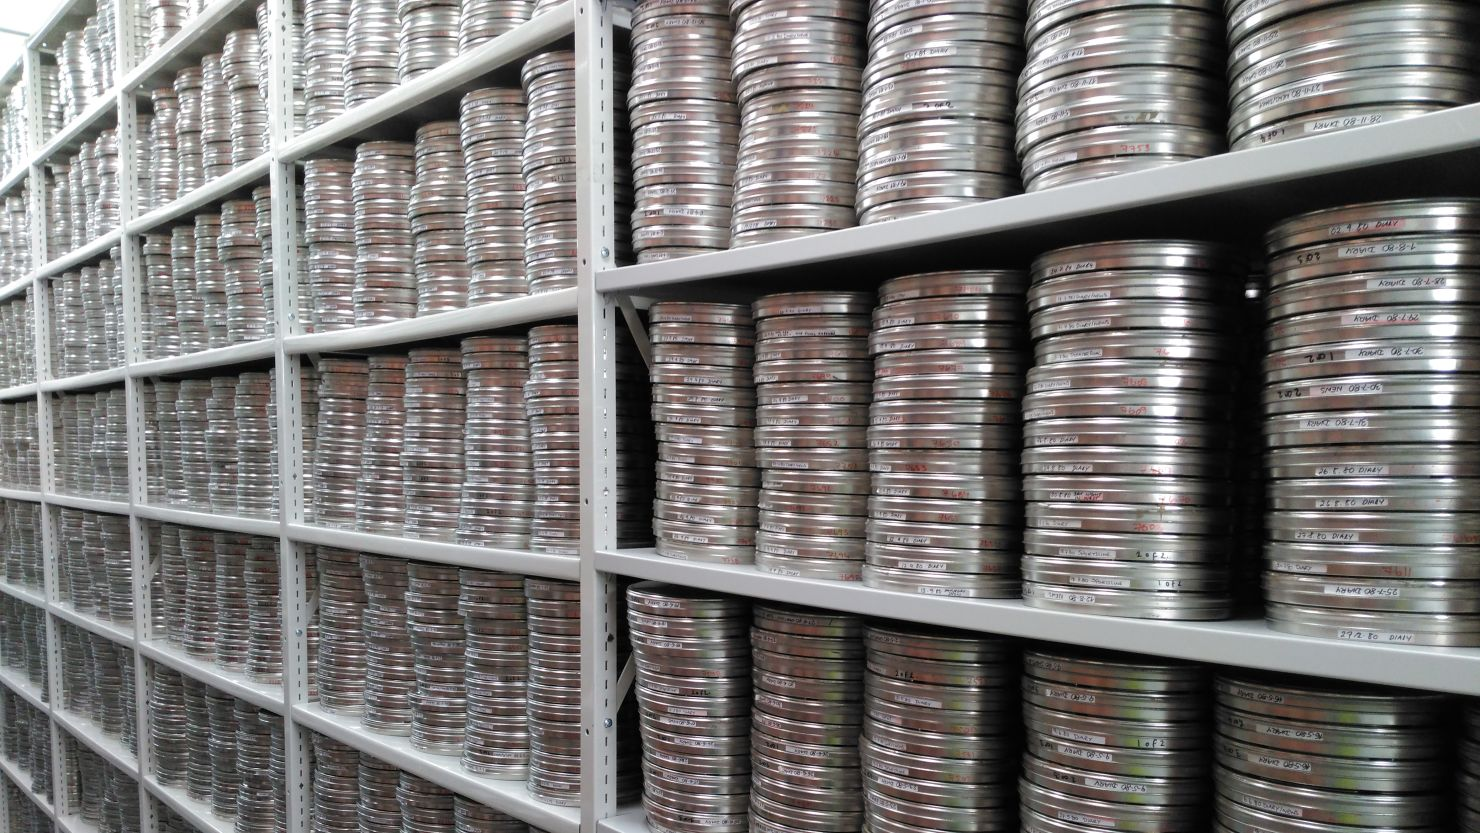 Film reels in silver cases on shelves in an archive store